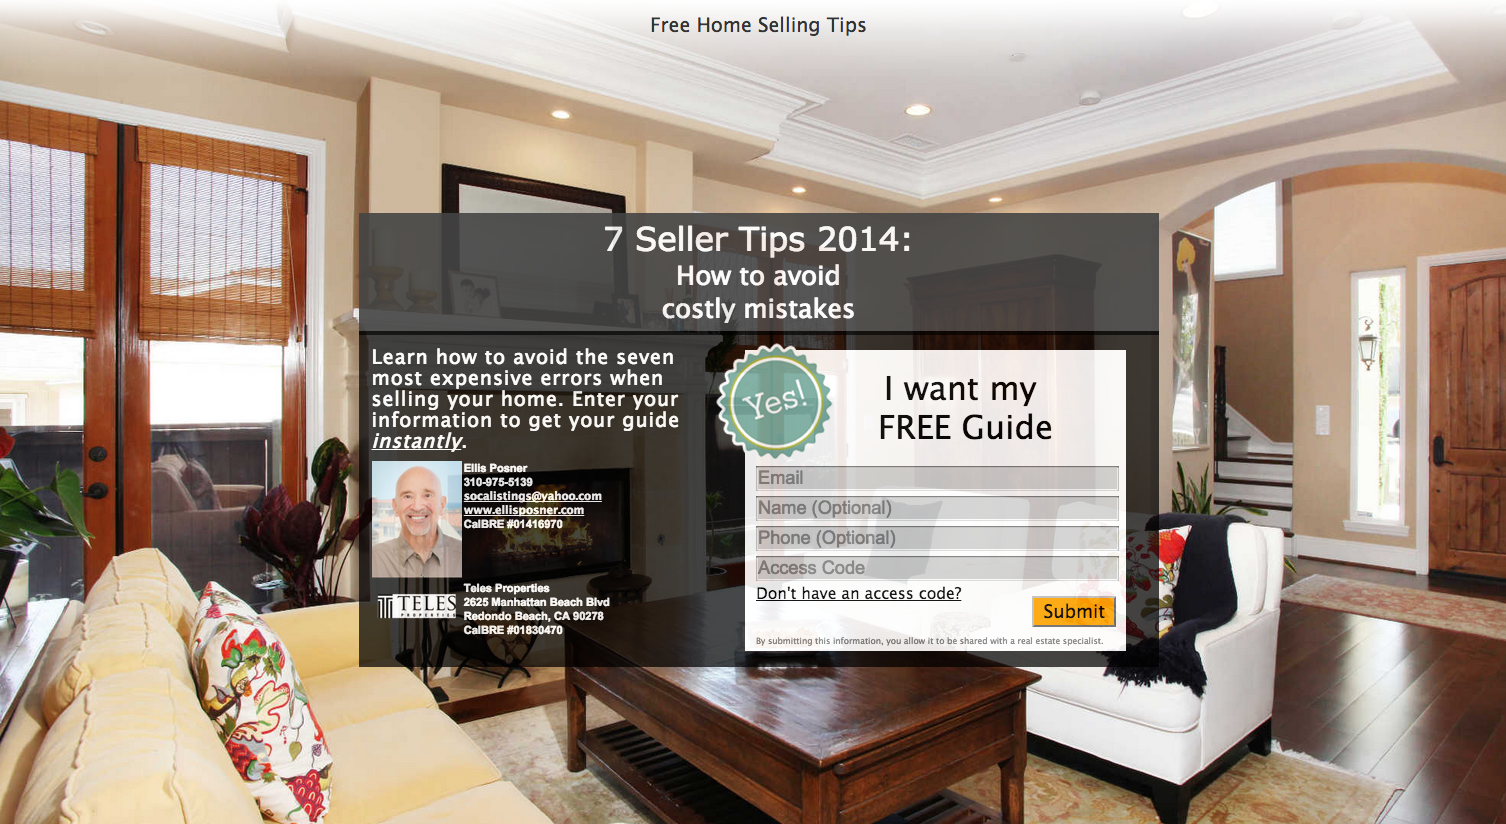 Selling Your Home in Redondo Beach CA: Read these 7 Seller Tips